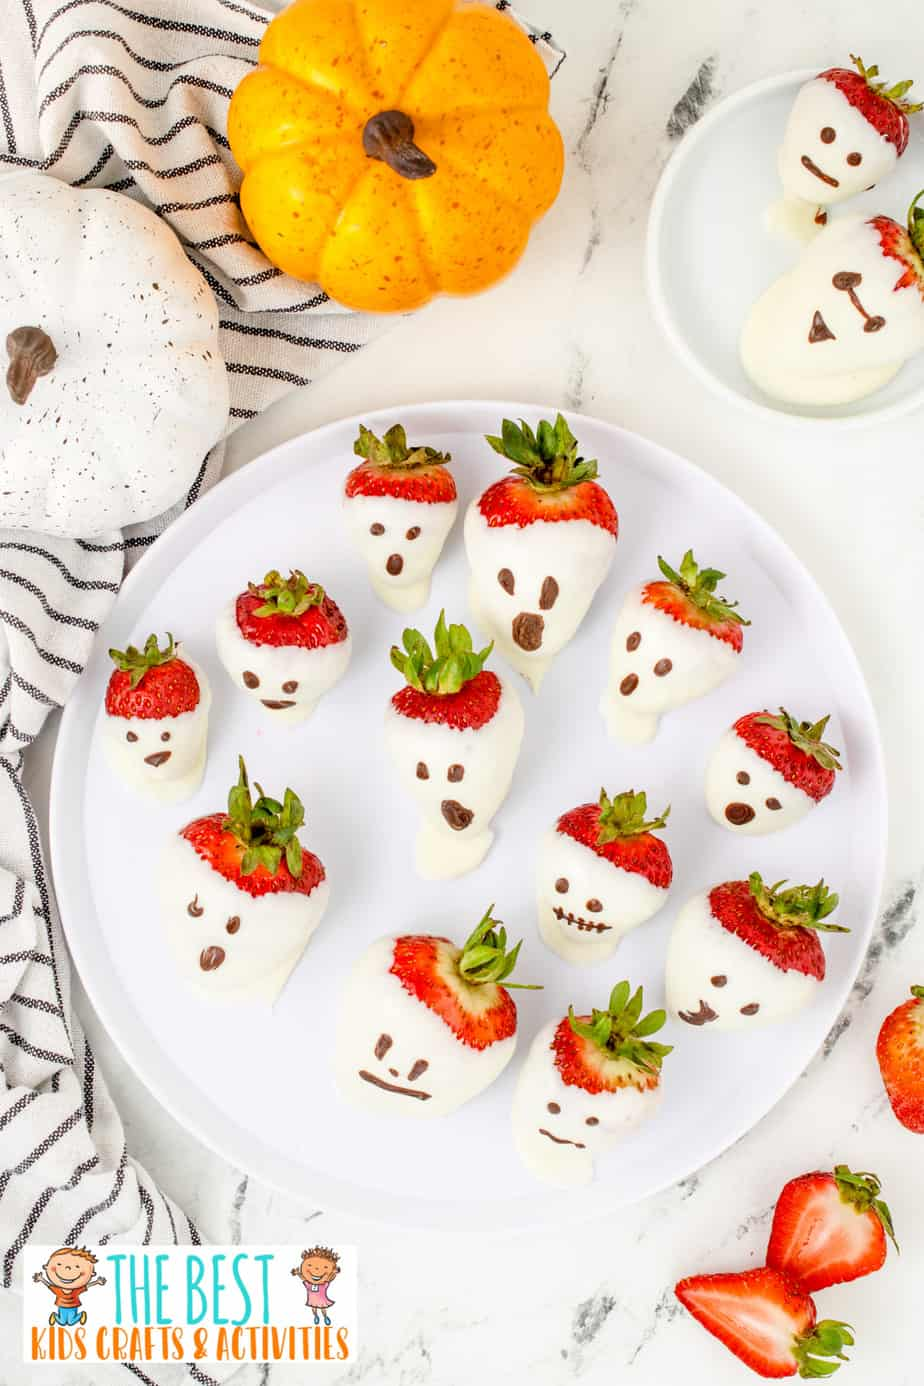 ghost strawberries made with white chocolate on a platter